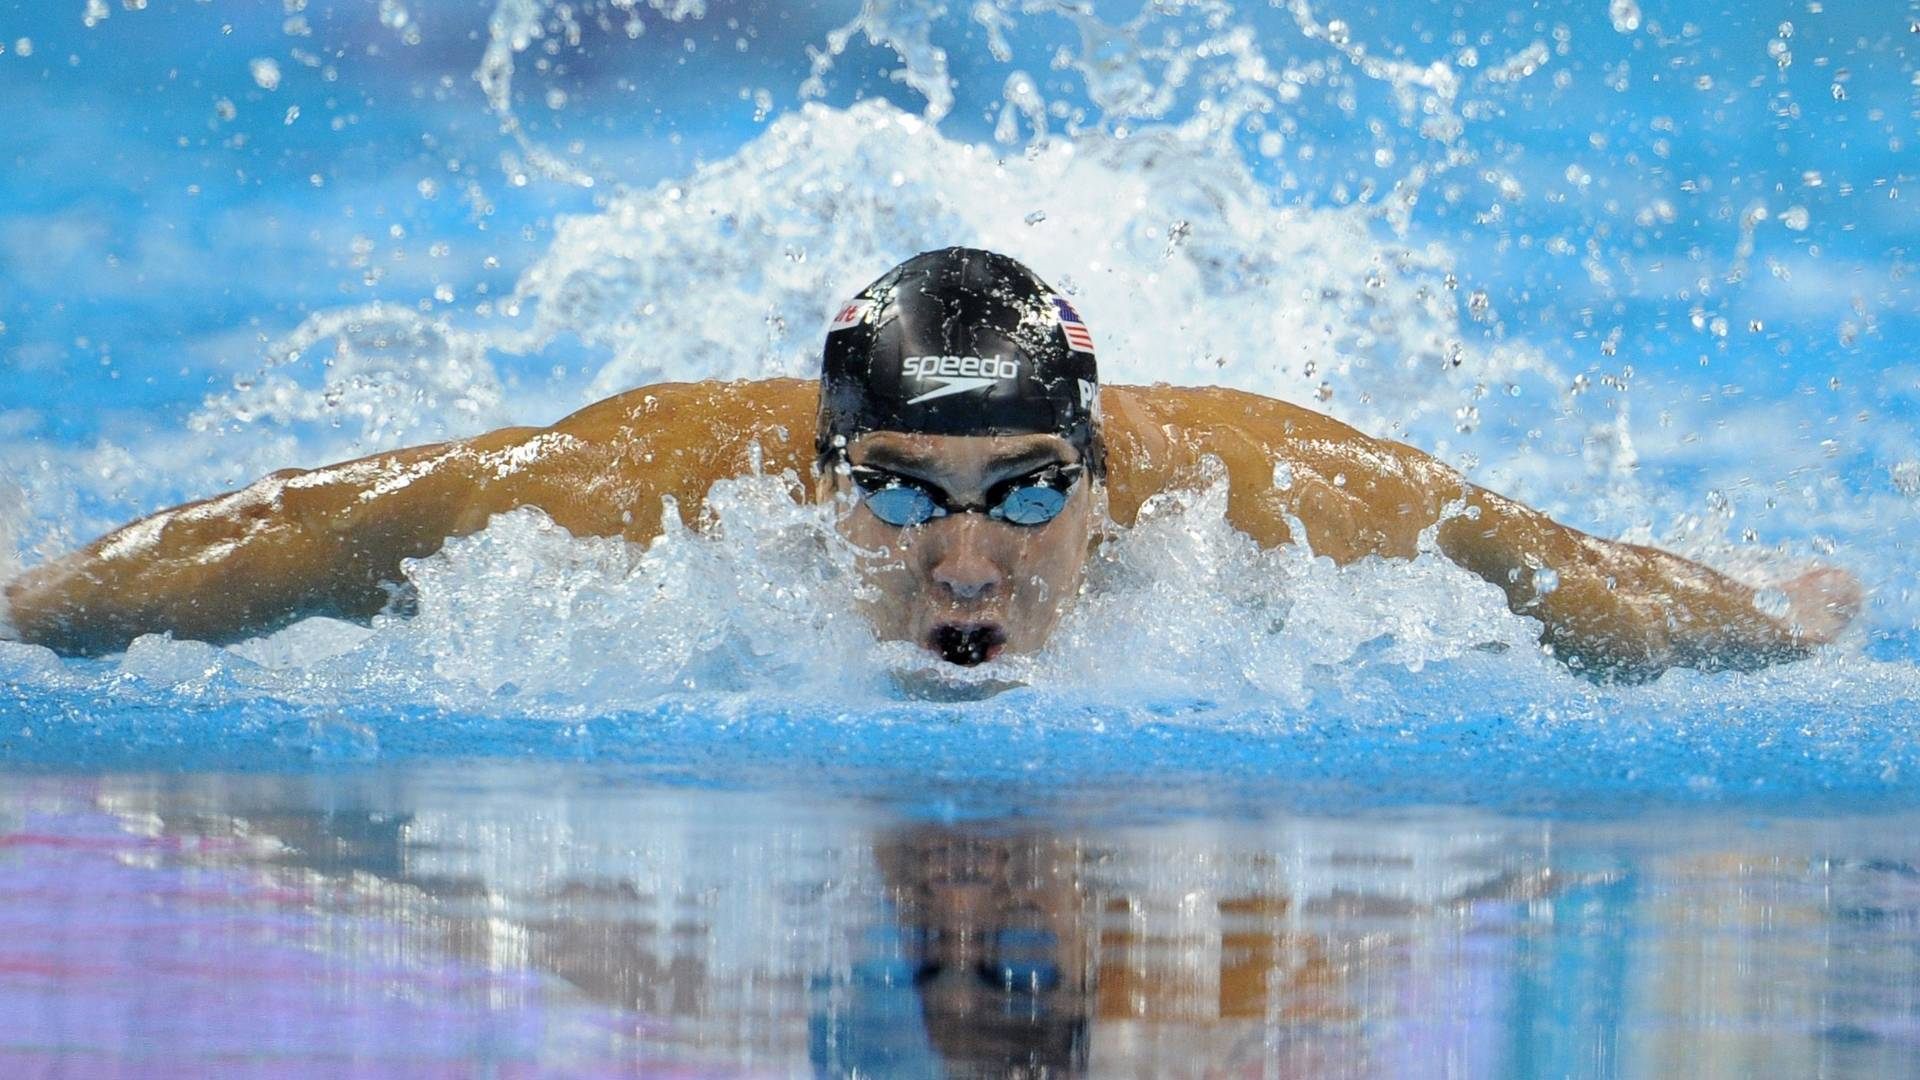 Michael Phelps conquistou a medalha de ouro nos 100m borboleta no Mundial de Xangai (30/07/2011)